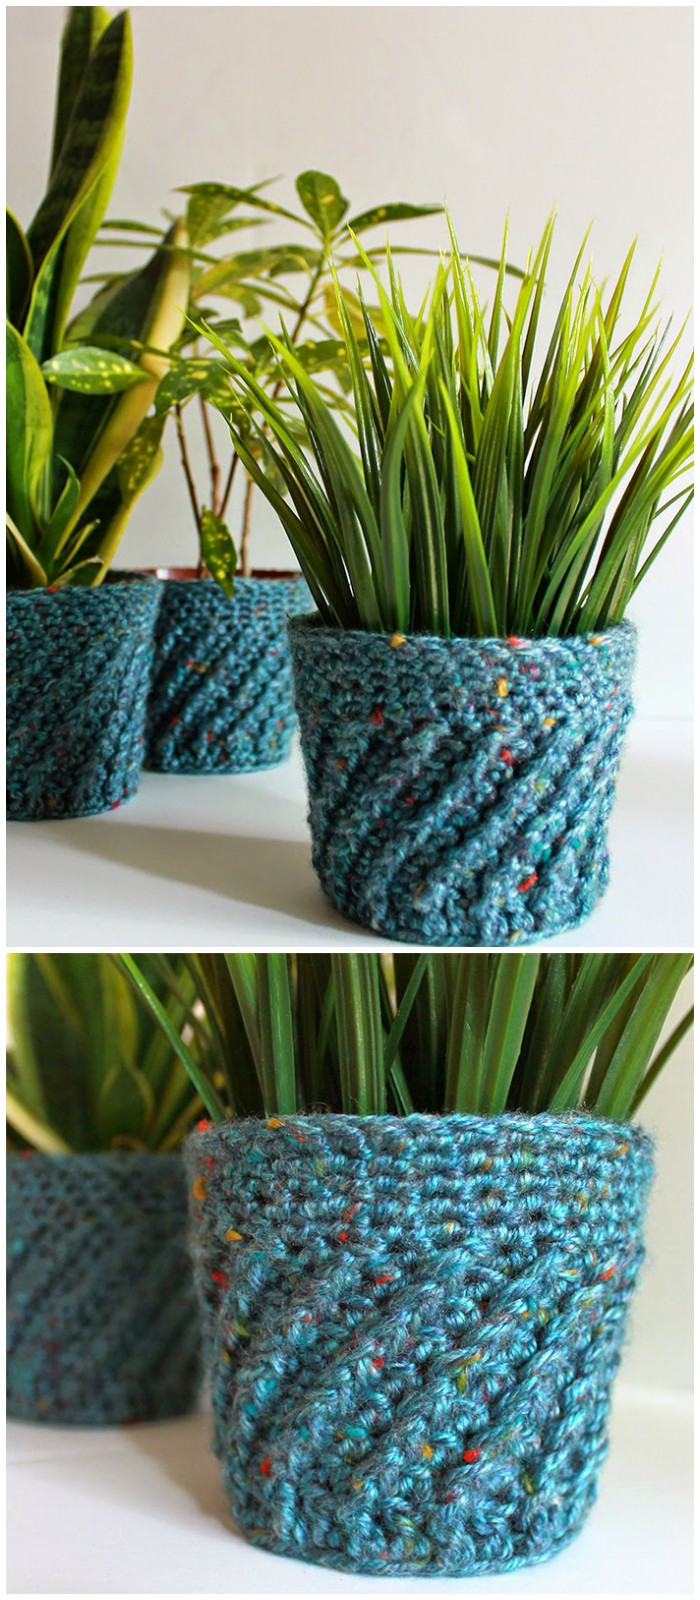 Crochet Home Decor Fresh Easy Free Crochet Home Decor Patterns • Diy Home Decor Of Amazing 43 Pics Crochet Home Decor